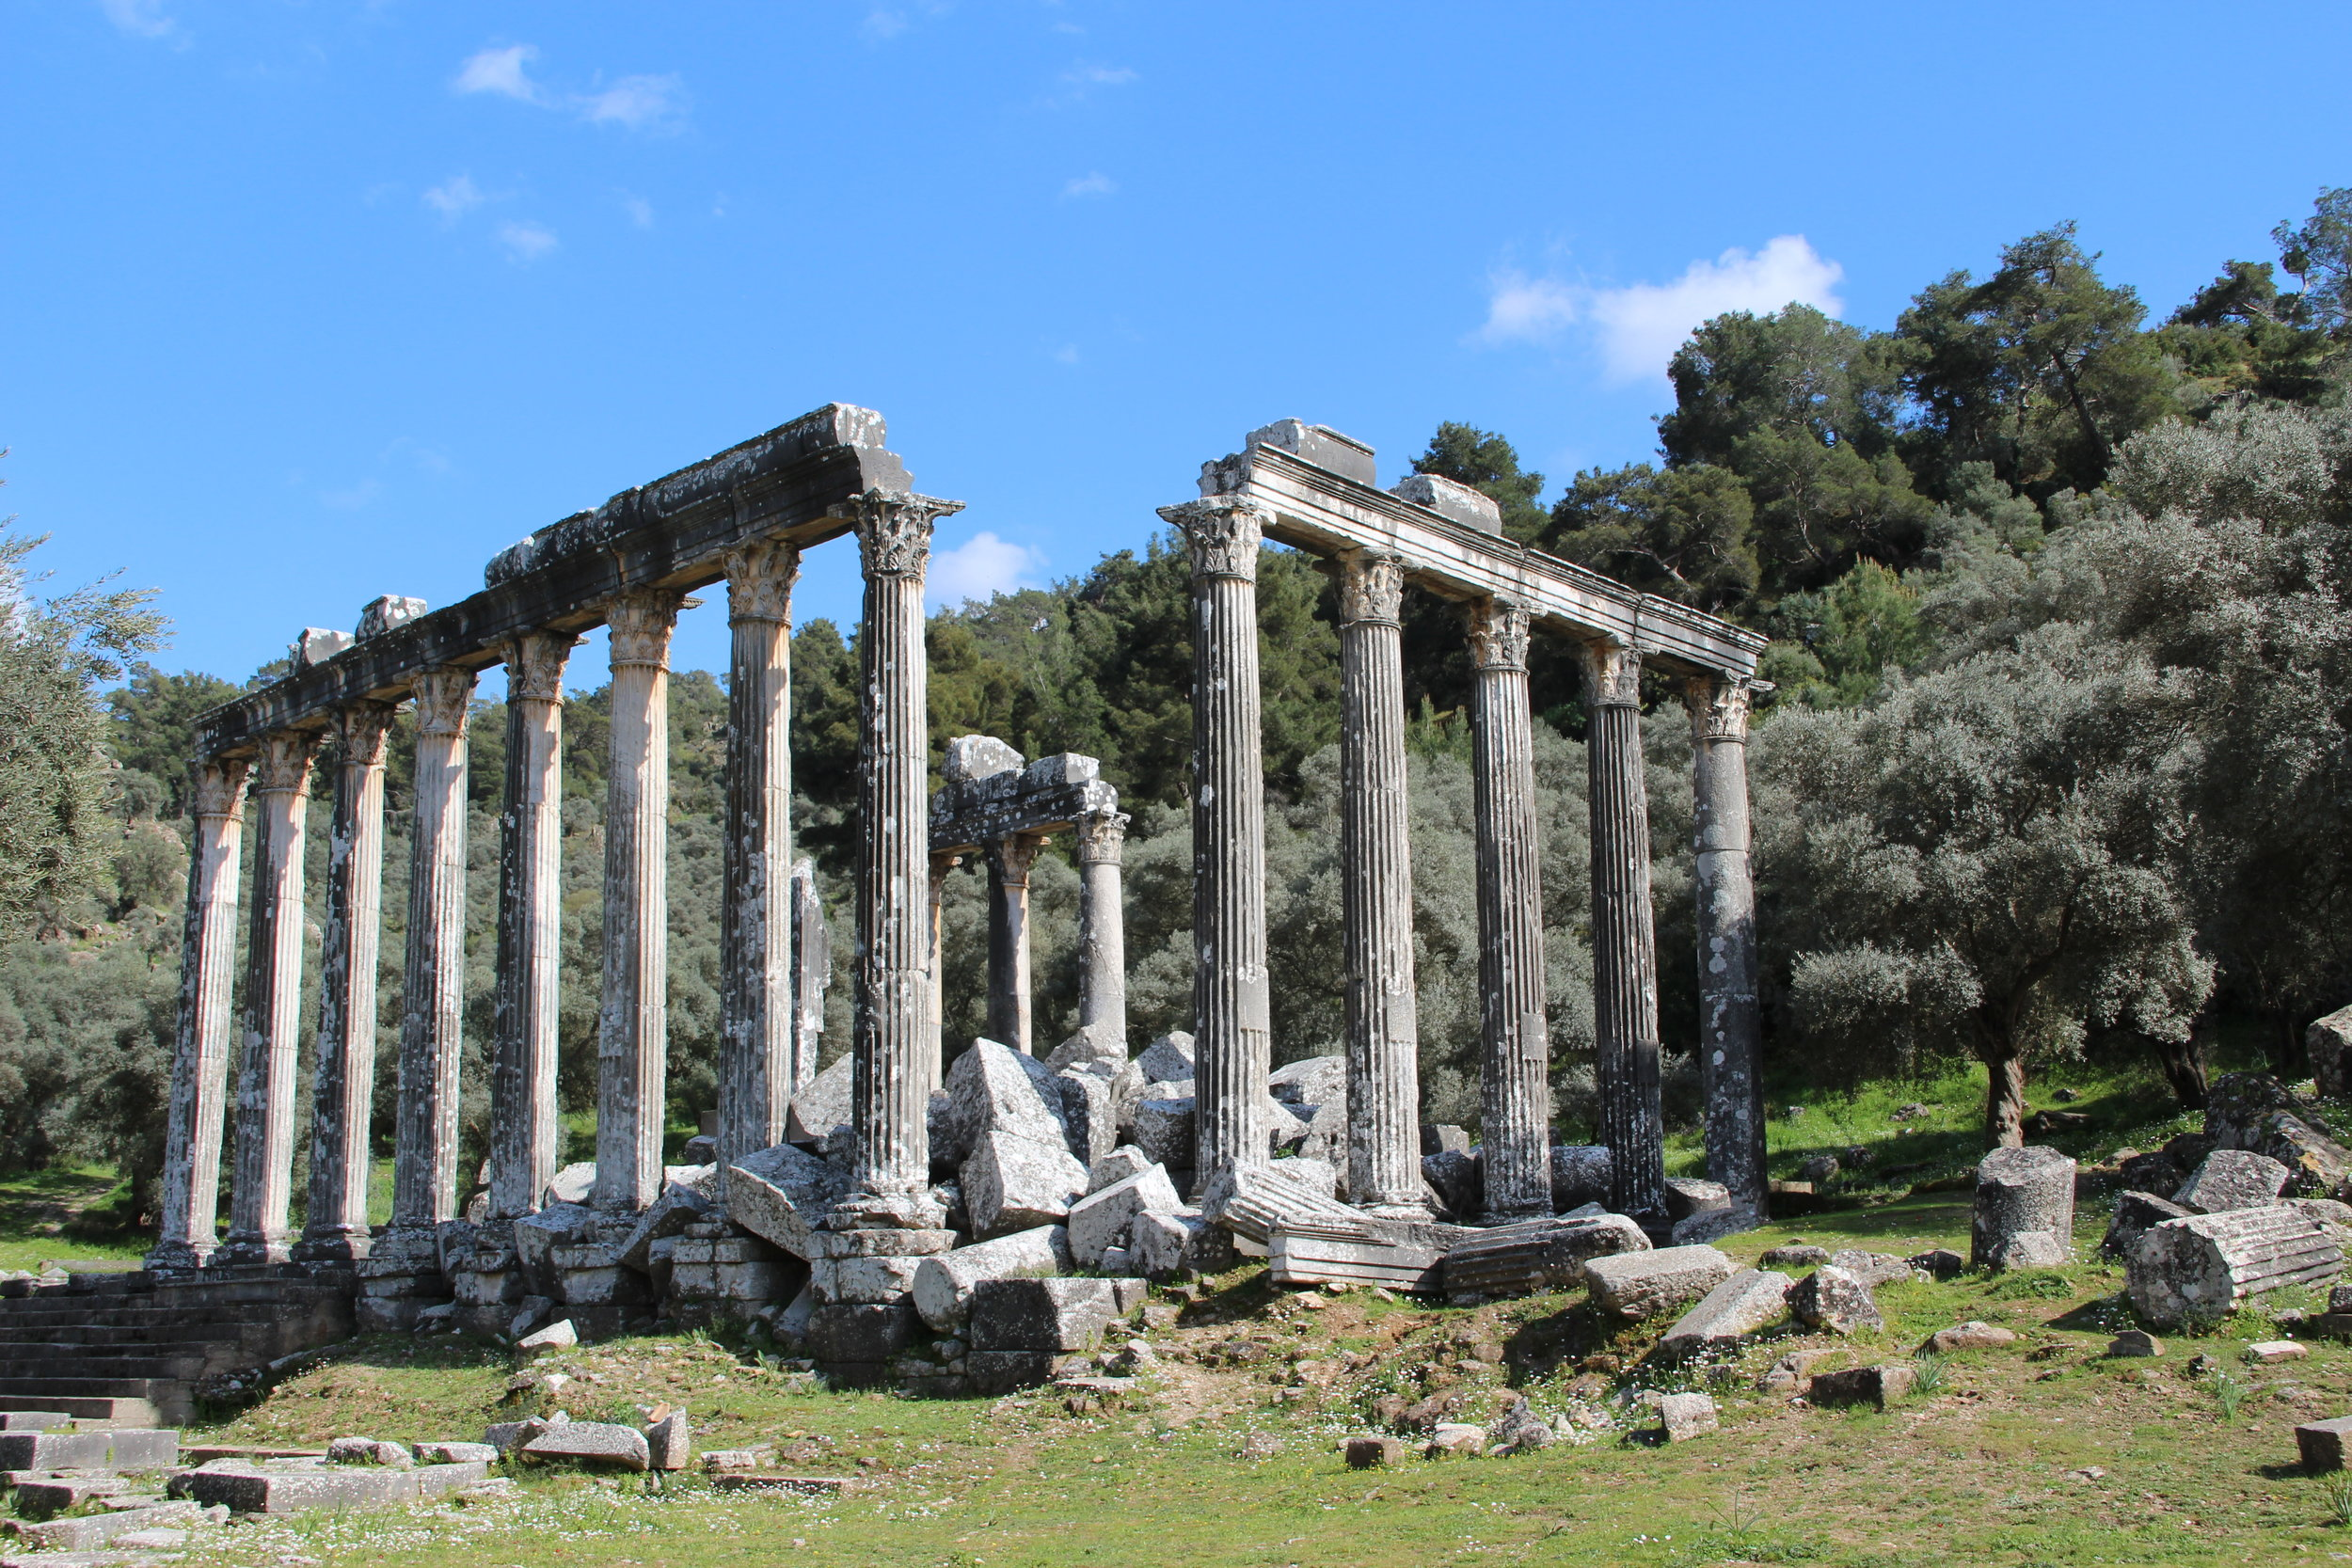 The temple of Zeus, Euromos - 2nd century BC